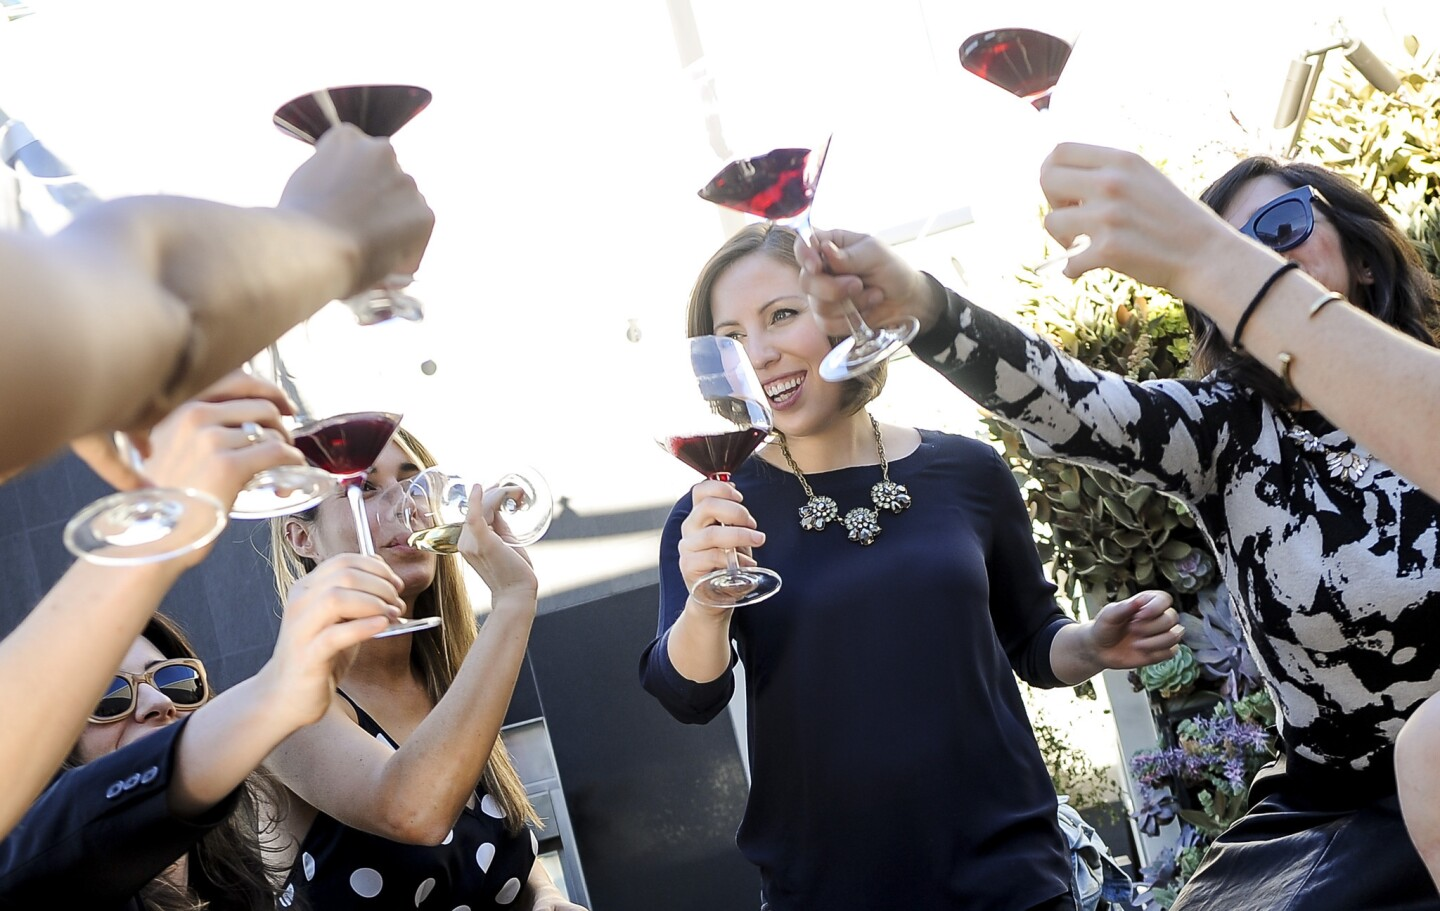 Elizabeth Huettinger, wine director at Otium restaurant, center, hosts a gathering of sommeliers and friends at her apartment building, the newly completed Emerson in downtown L.A.